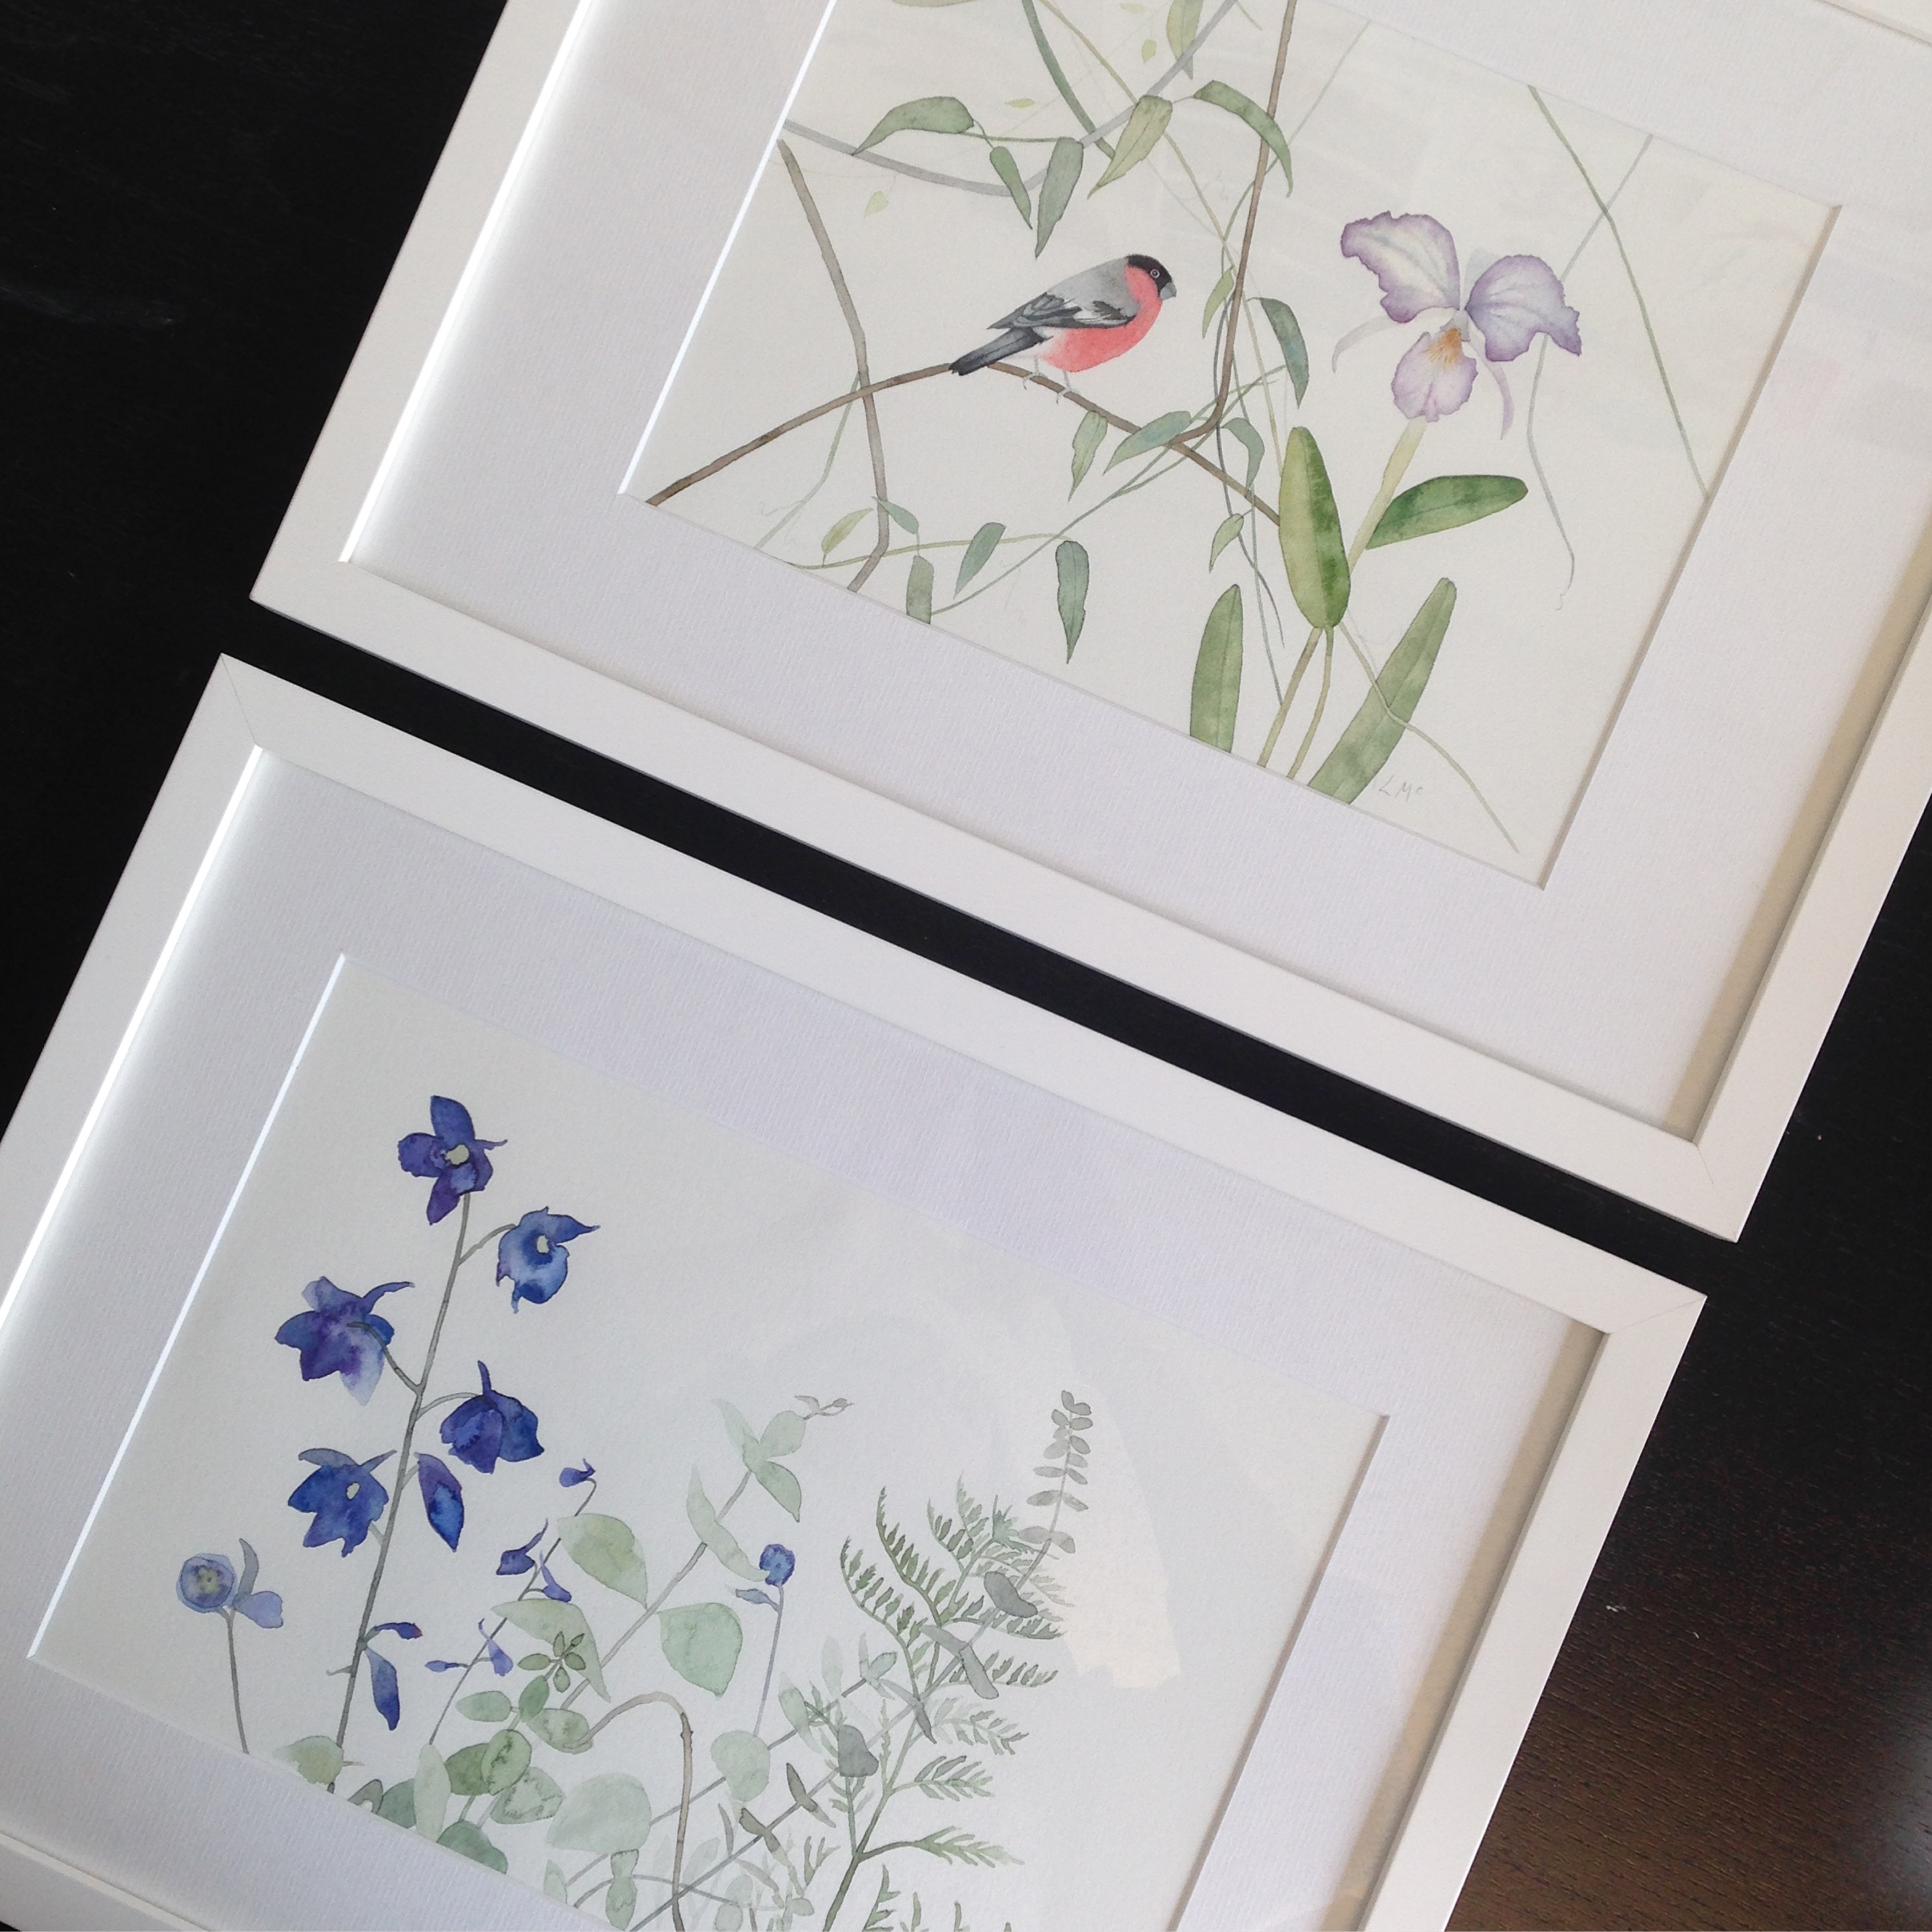 Botanical framed work by Lindsay McDonagh